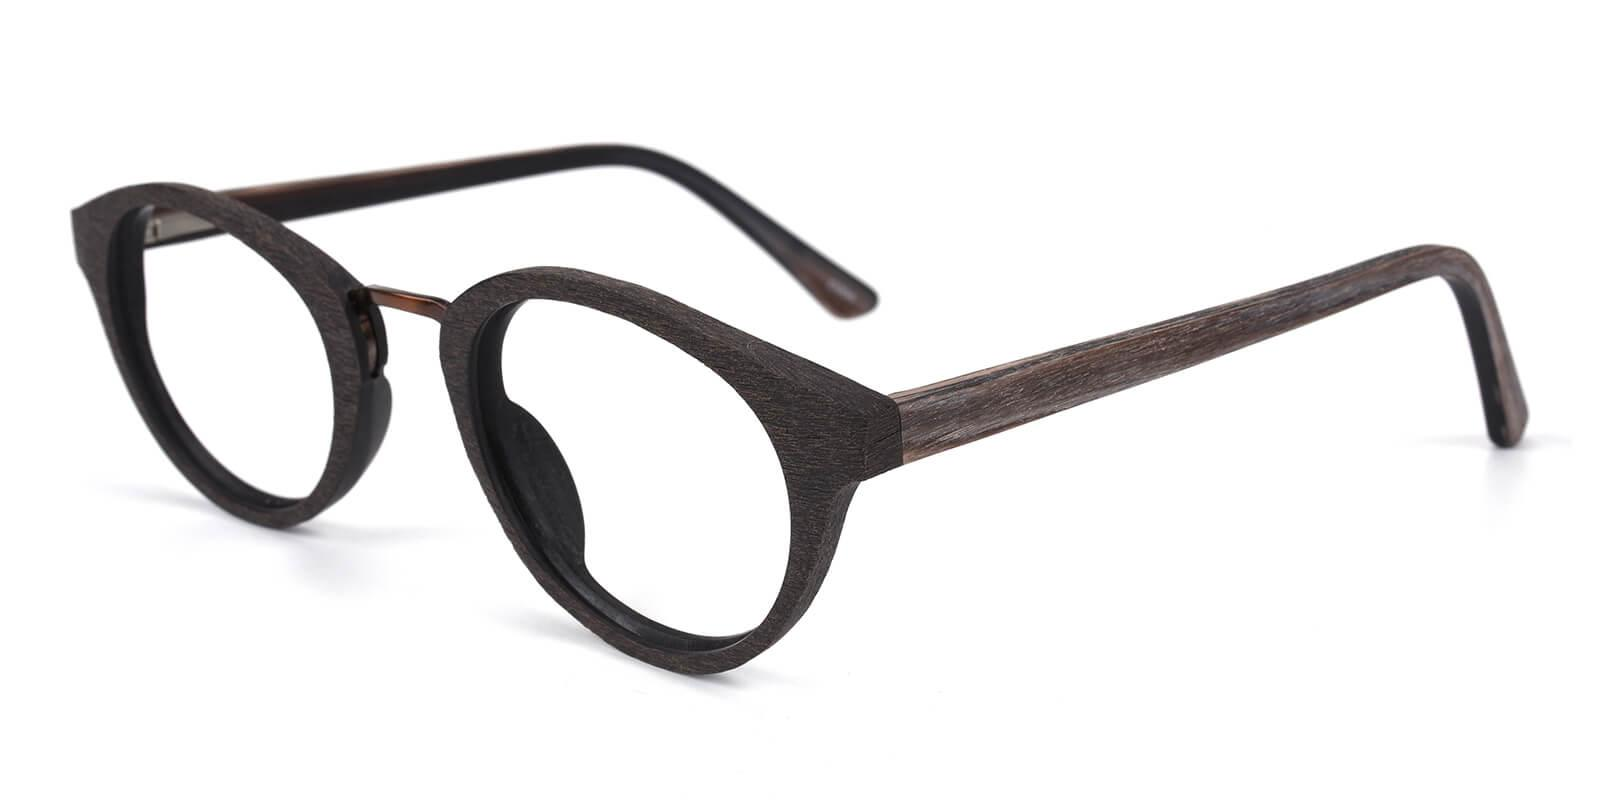 Haiden-Brown-Oval-Acetate-Eyeglasses-additional1